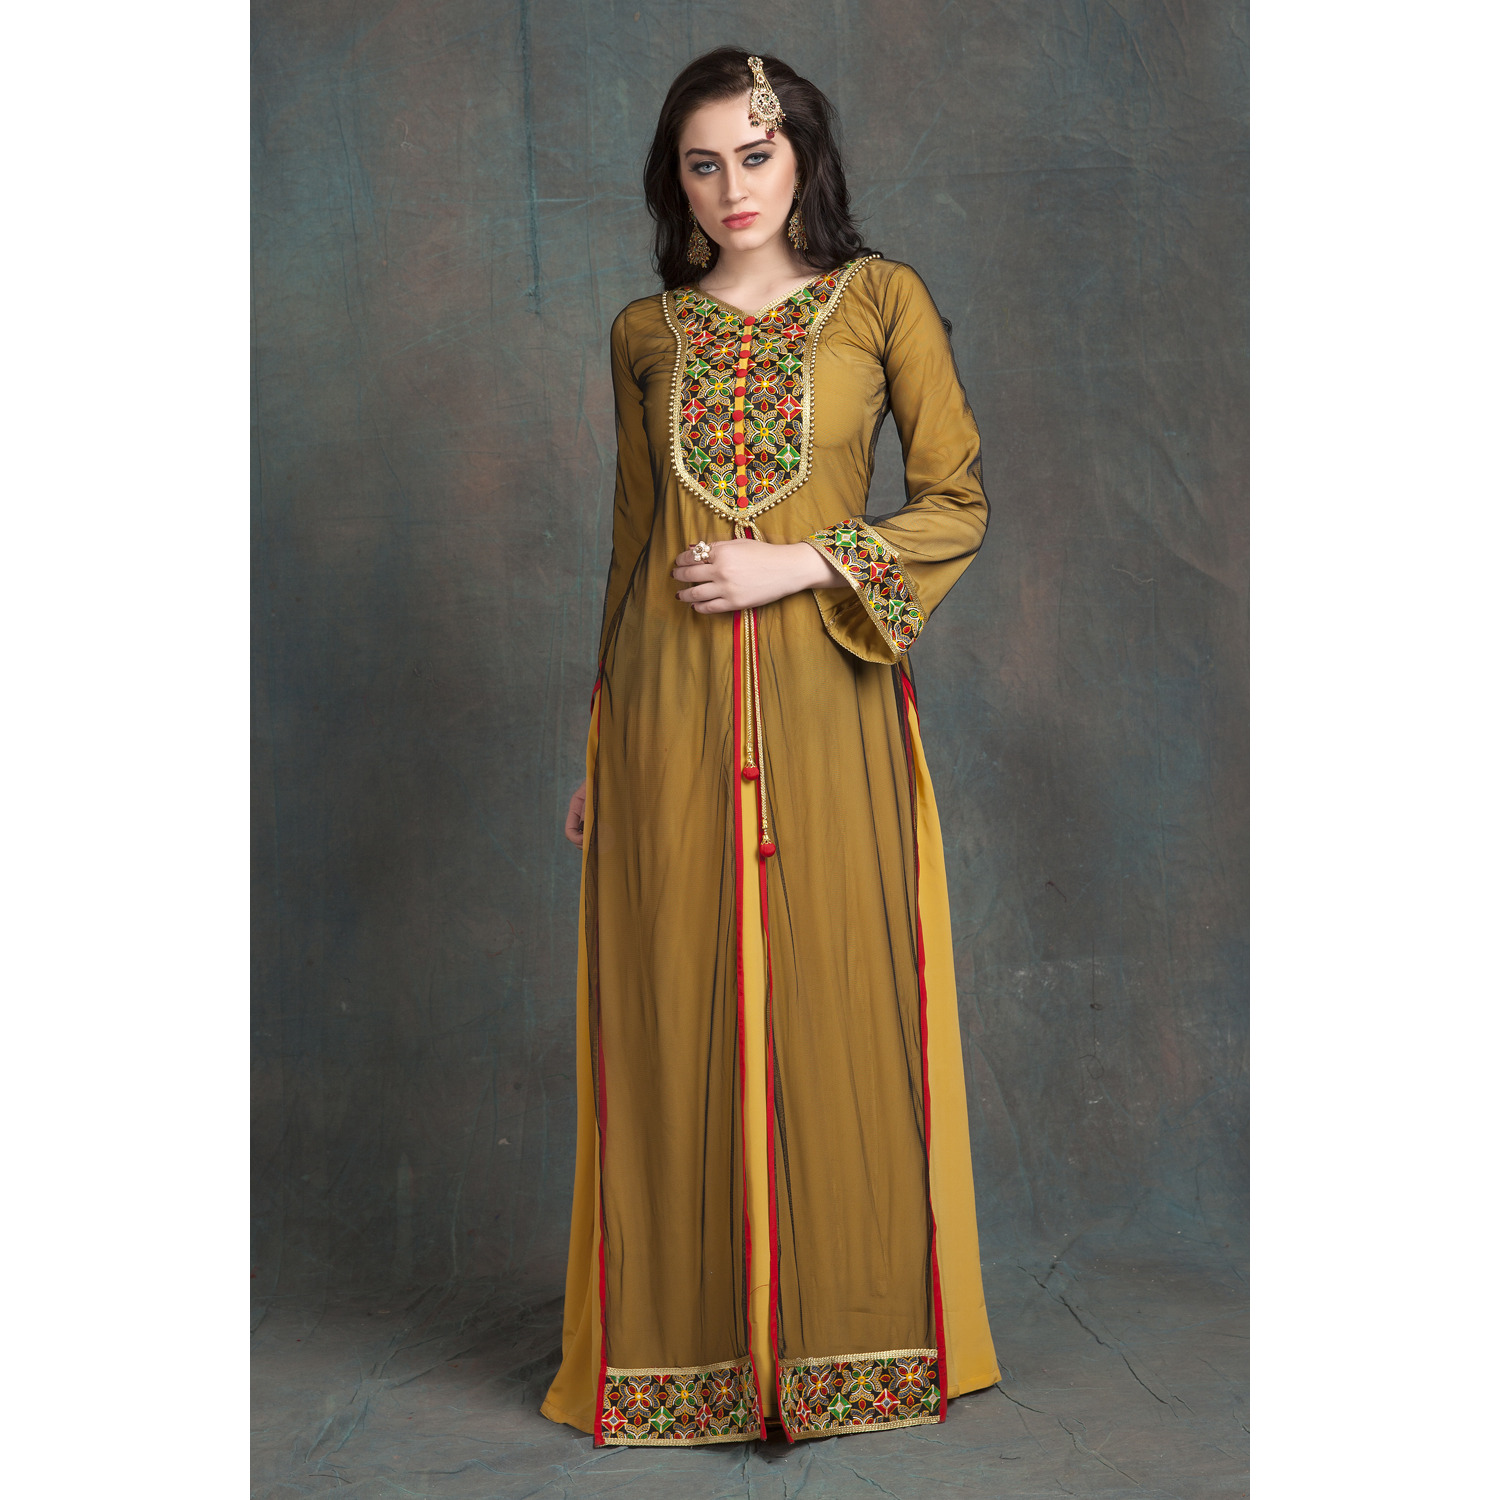 Gold Yellow Modern Style Embroidery Full Sleeve Formal Maxi Dress (Size:3XL)